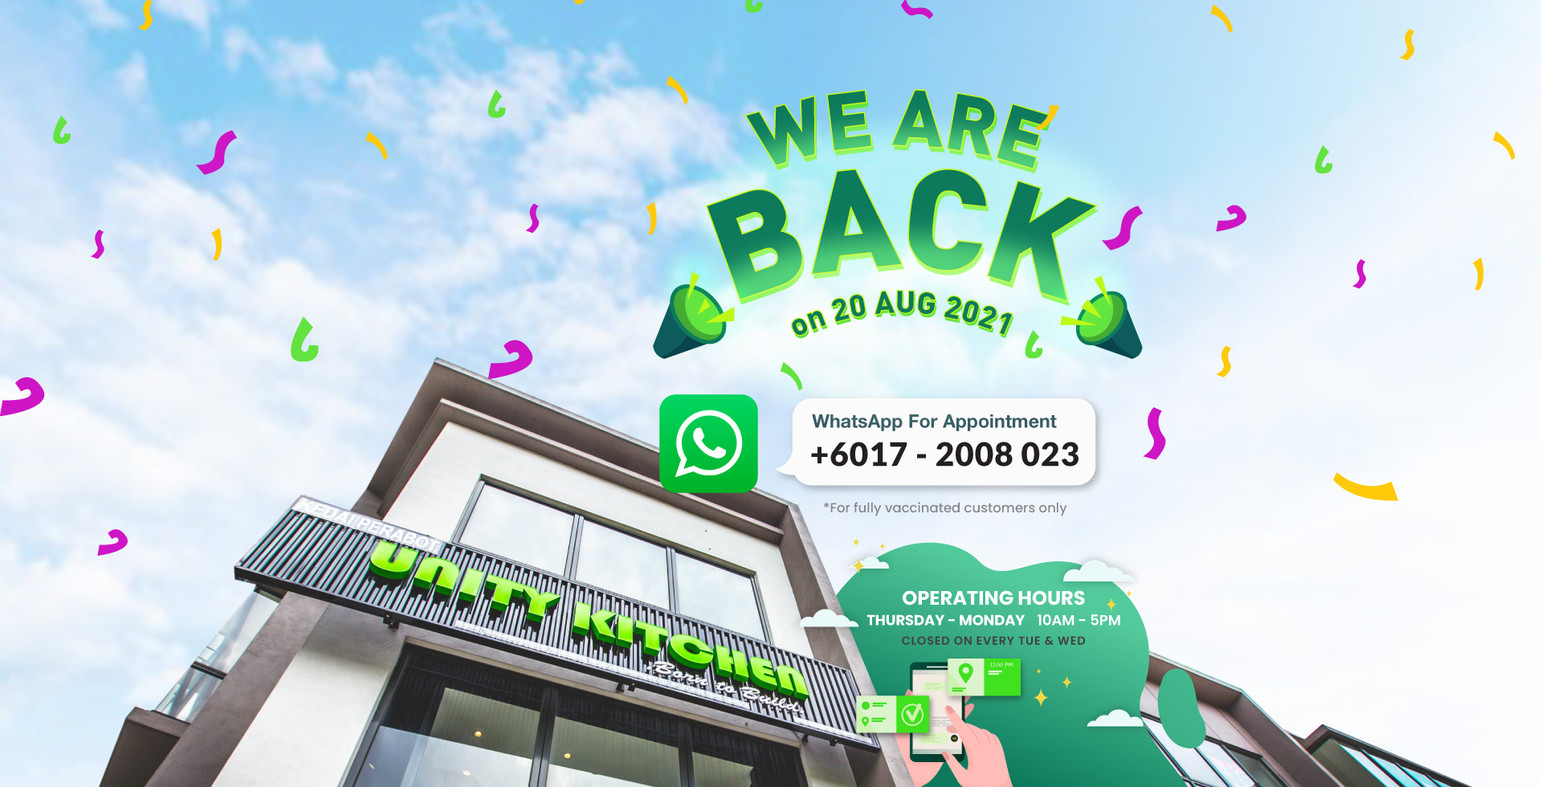 We Are Back On 20 Aug 2021!